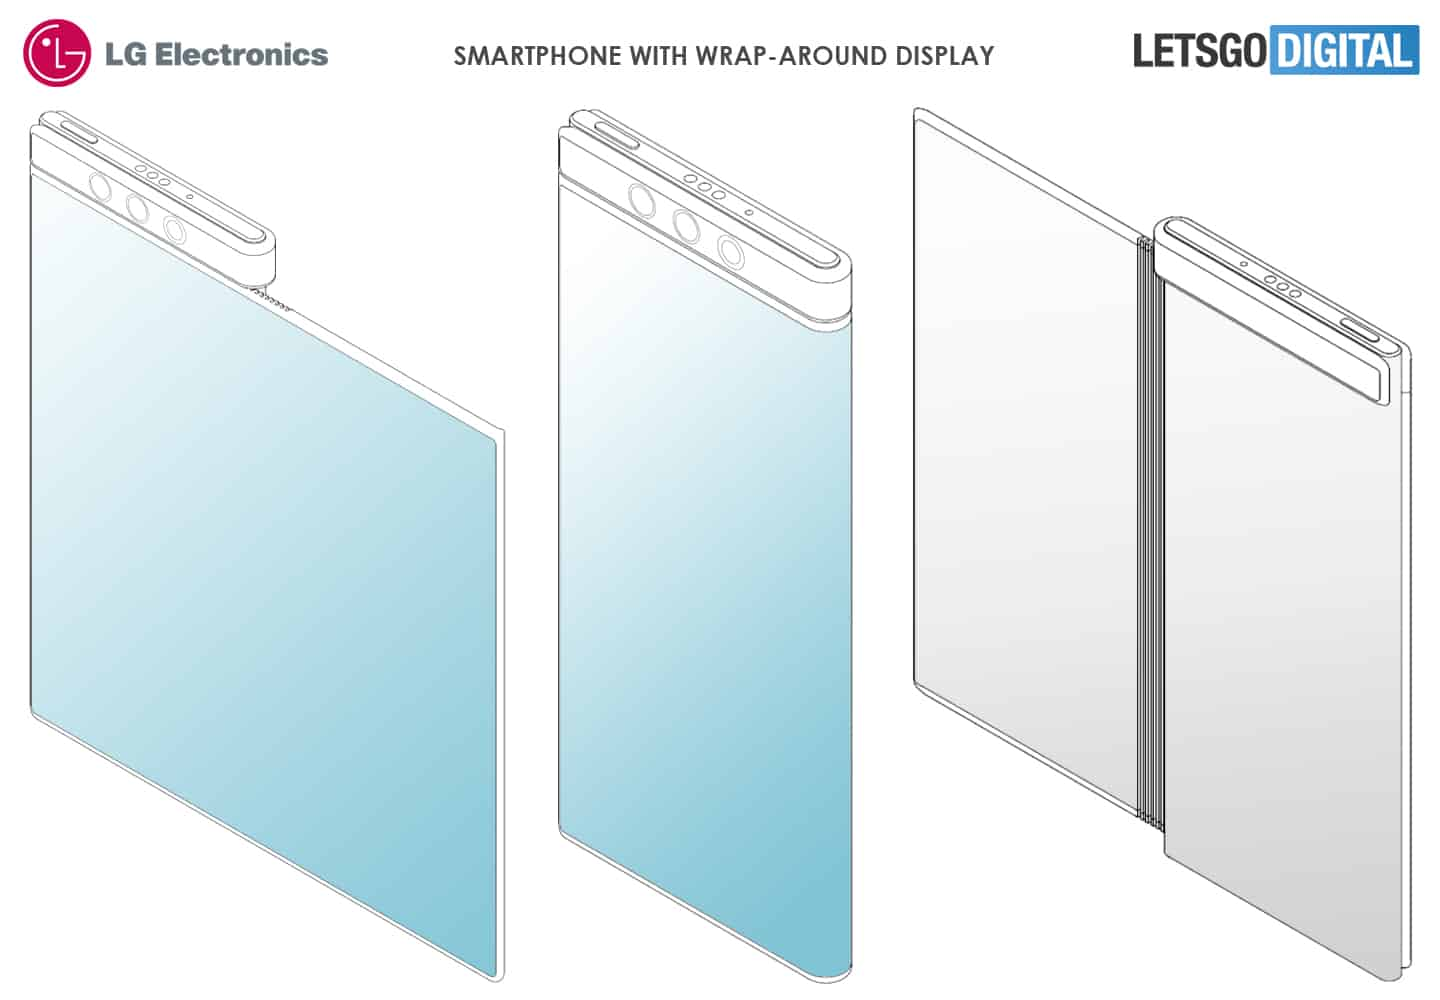 LG smartphone with flexible wrap around display patent 1